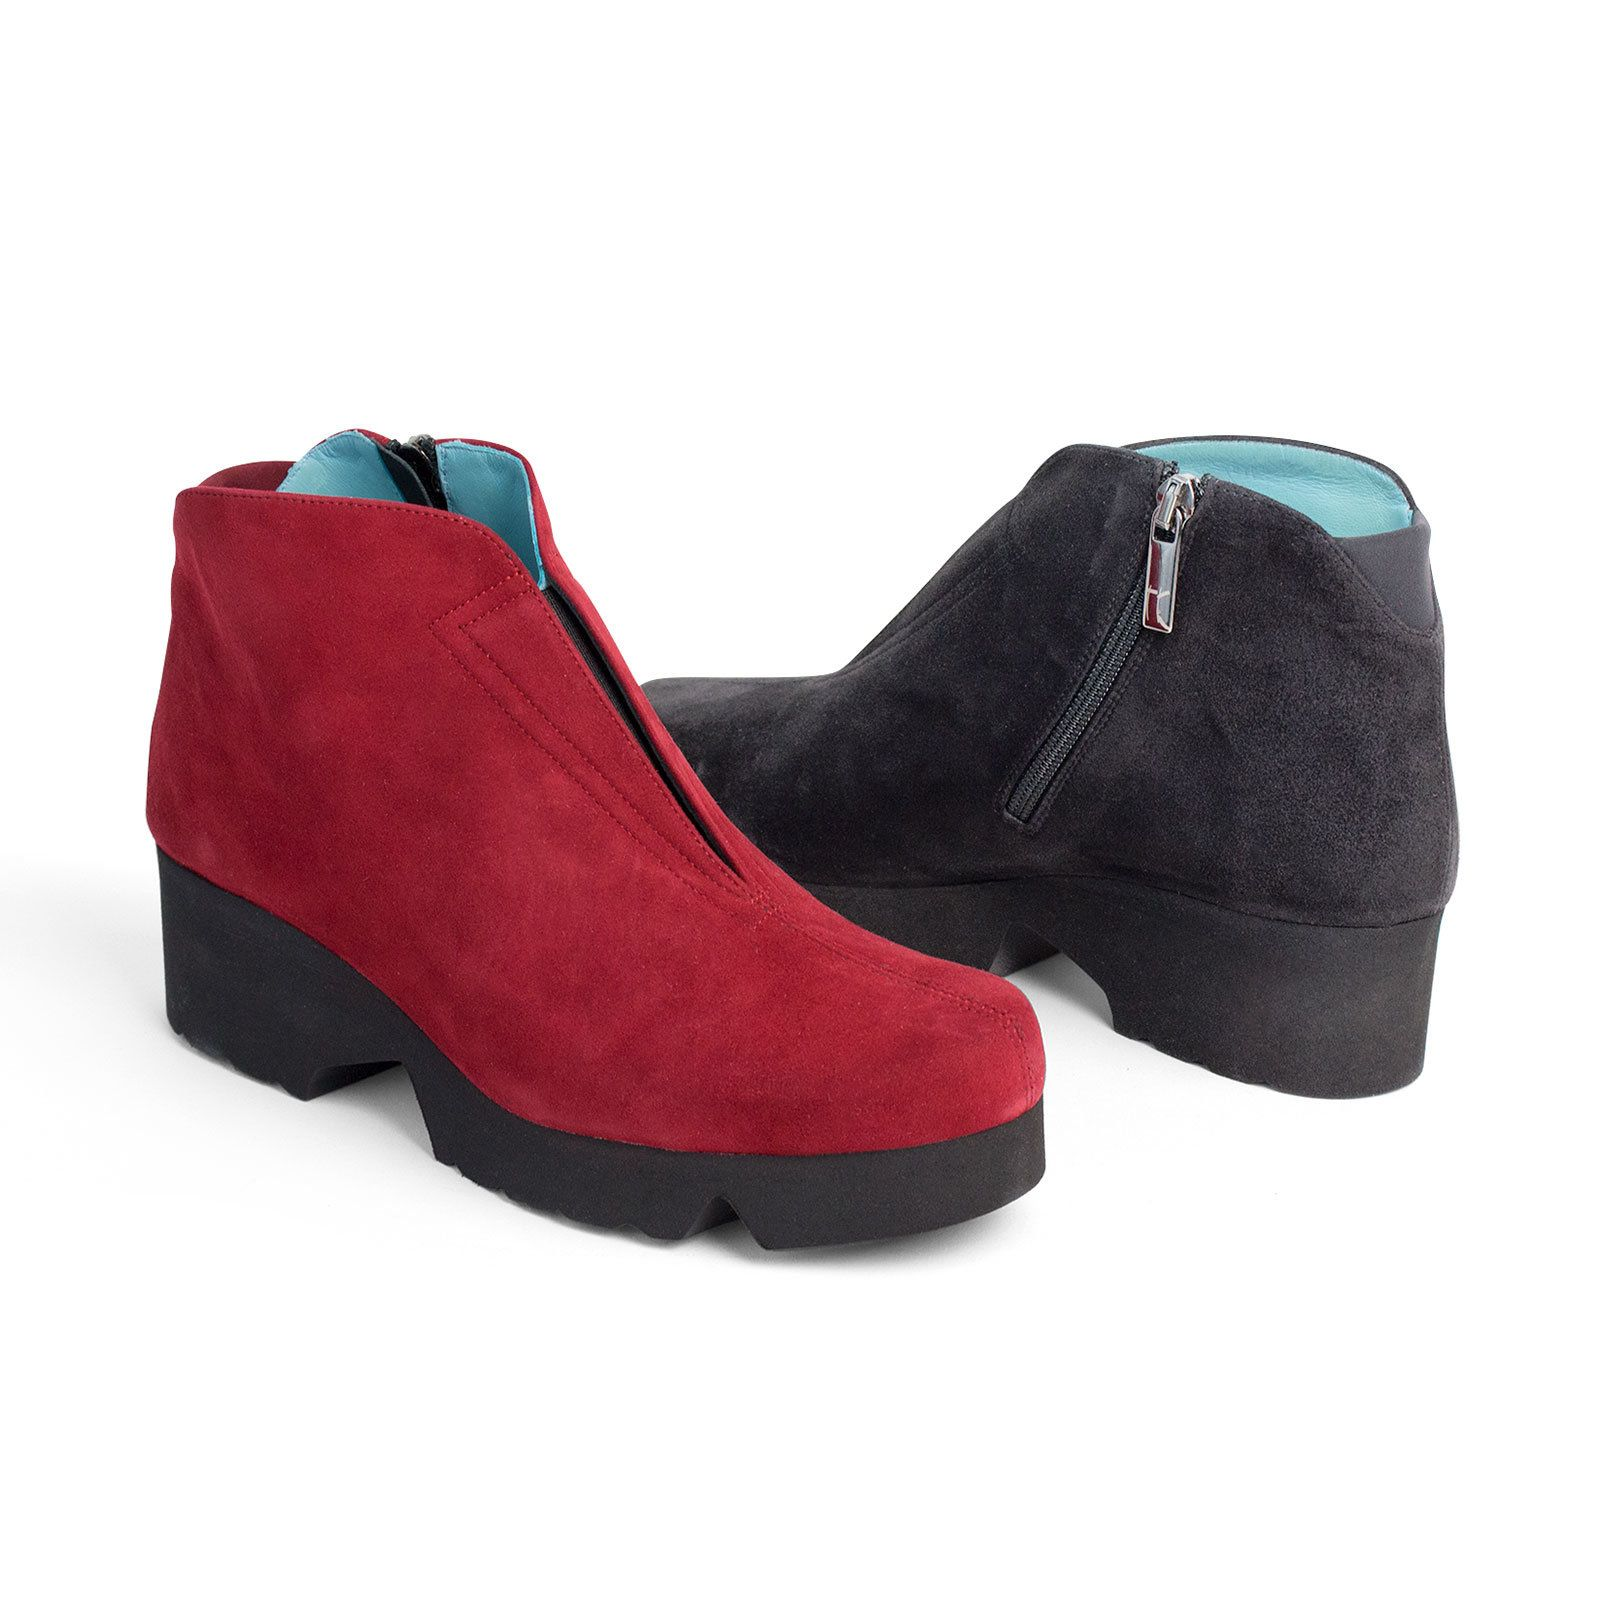 f1fff8ce37 Designed for all-day, everywhere comfort, this modern suede boot has a  sublime, glove-like fit thanks to a front elastic gore, instep zipper, and  microfiber ...